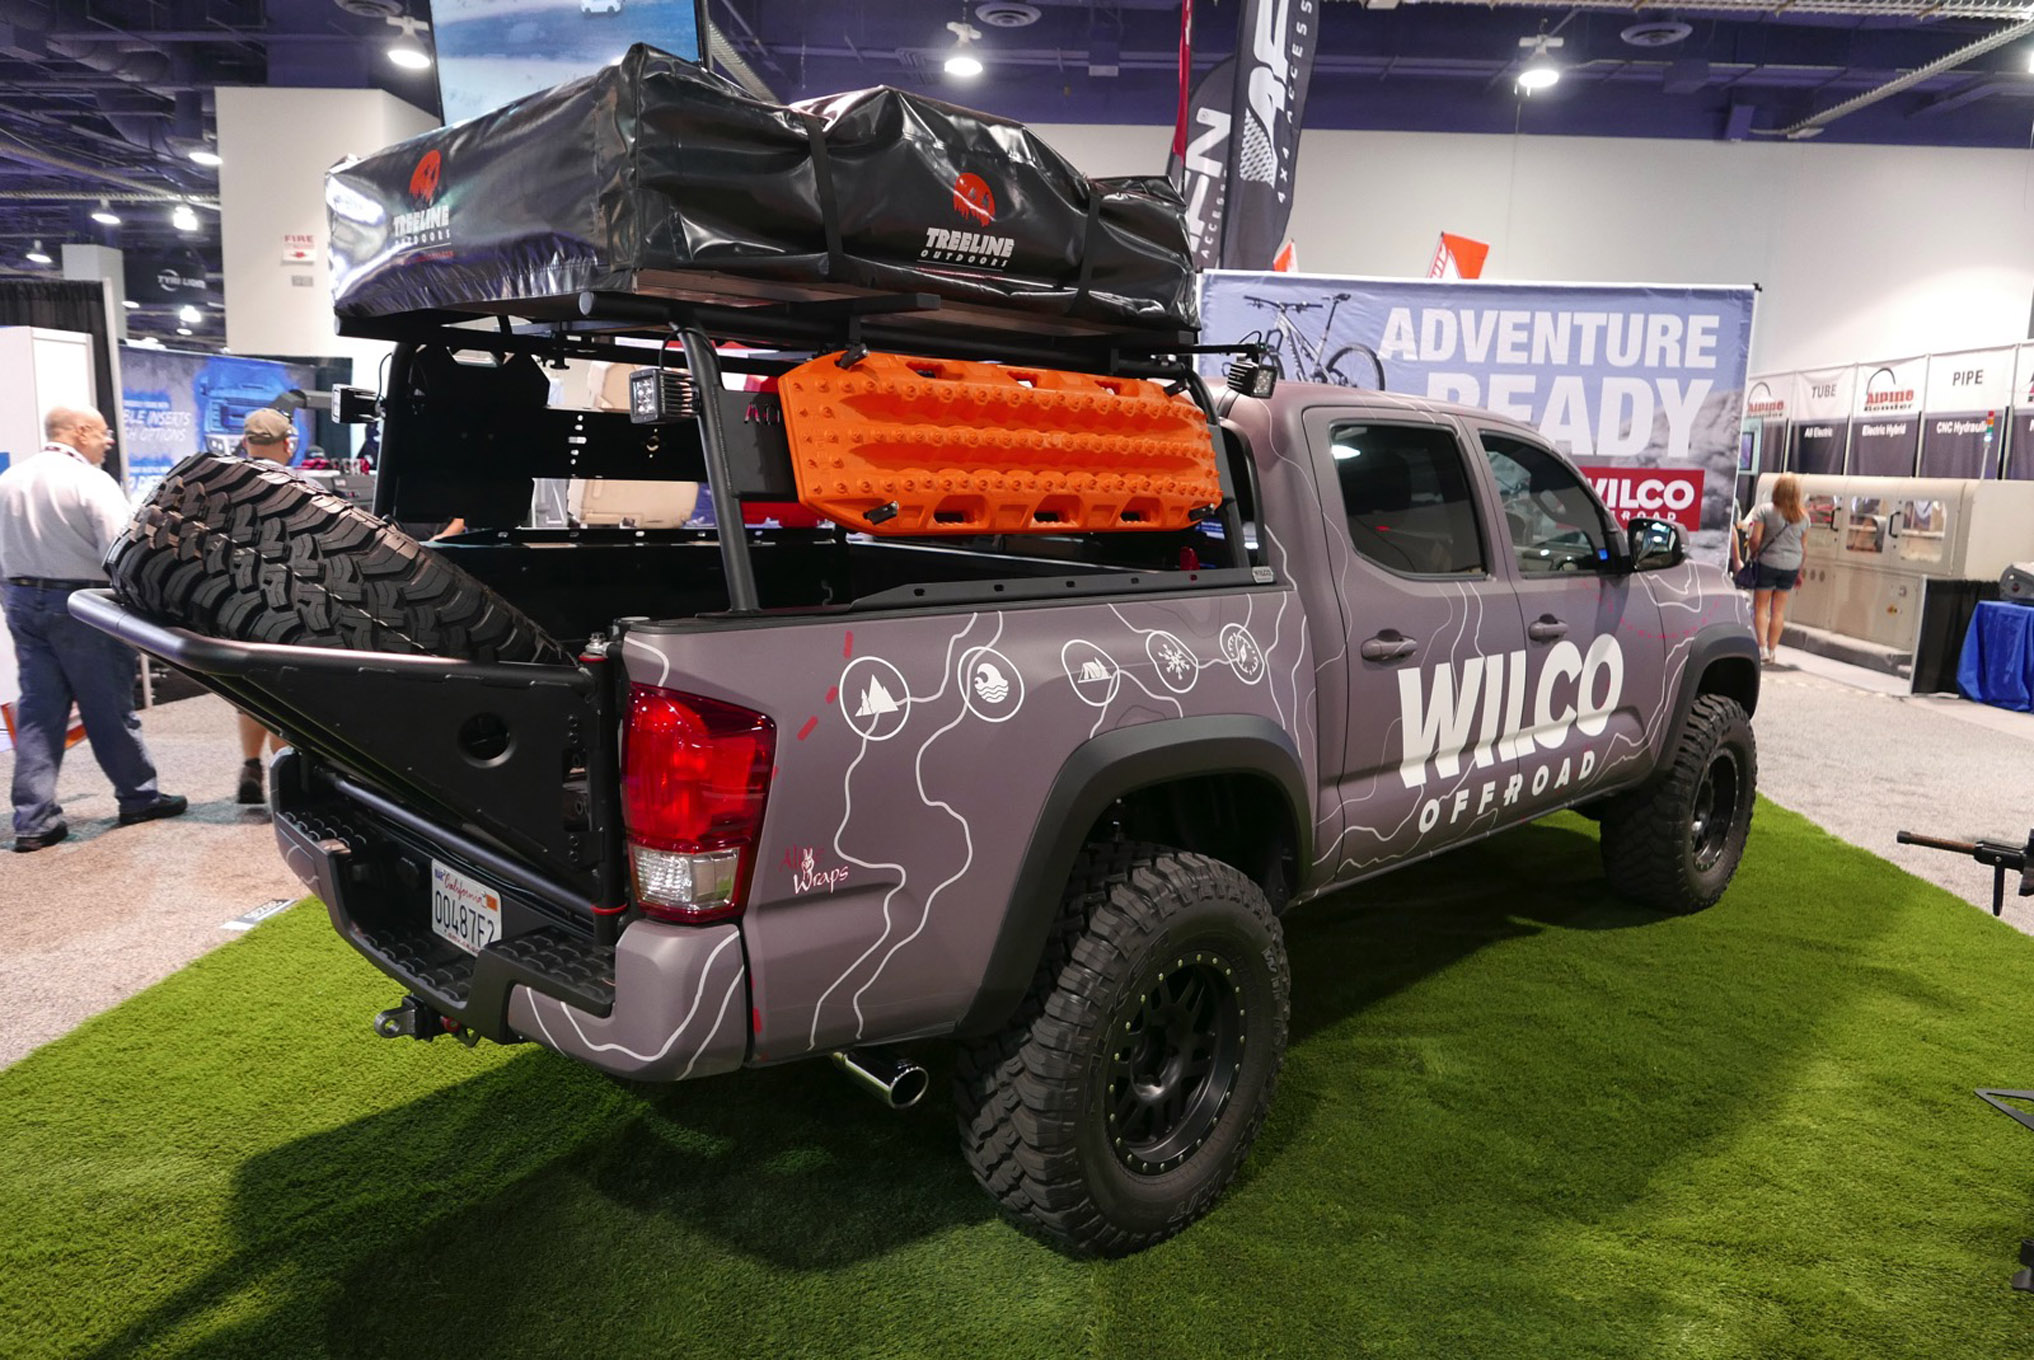 253 sema 2017 day 1 south upper hall gallery photos